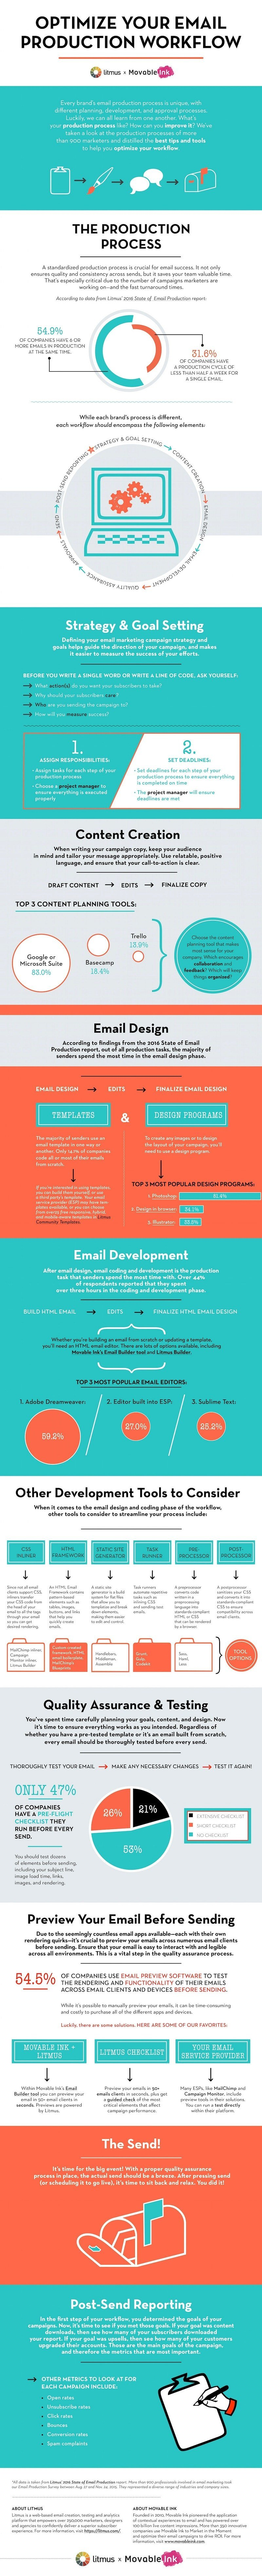 160820-optimize-your-email-production-workflow-infographic